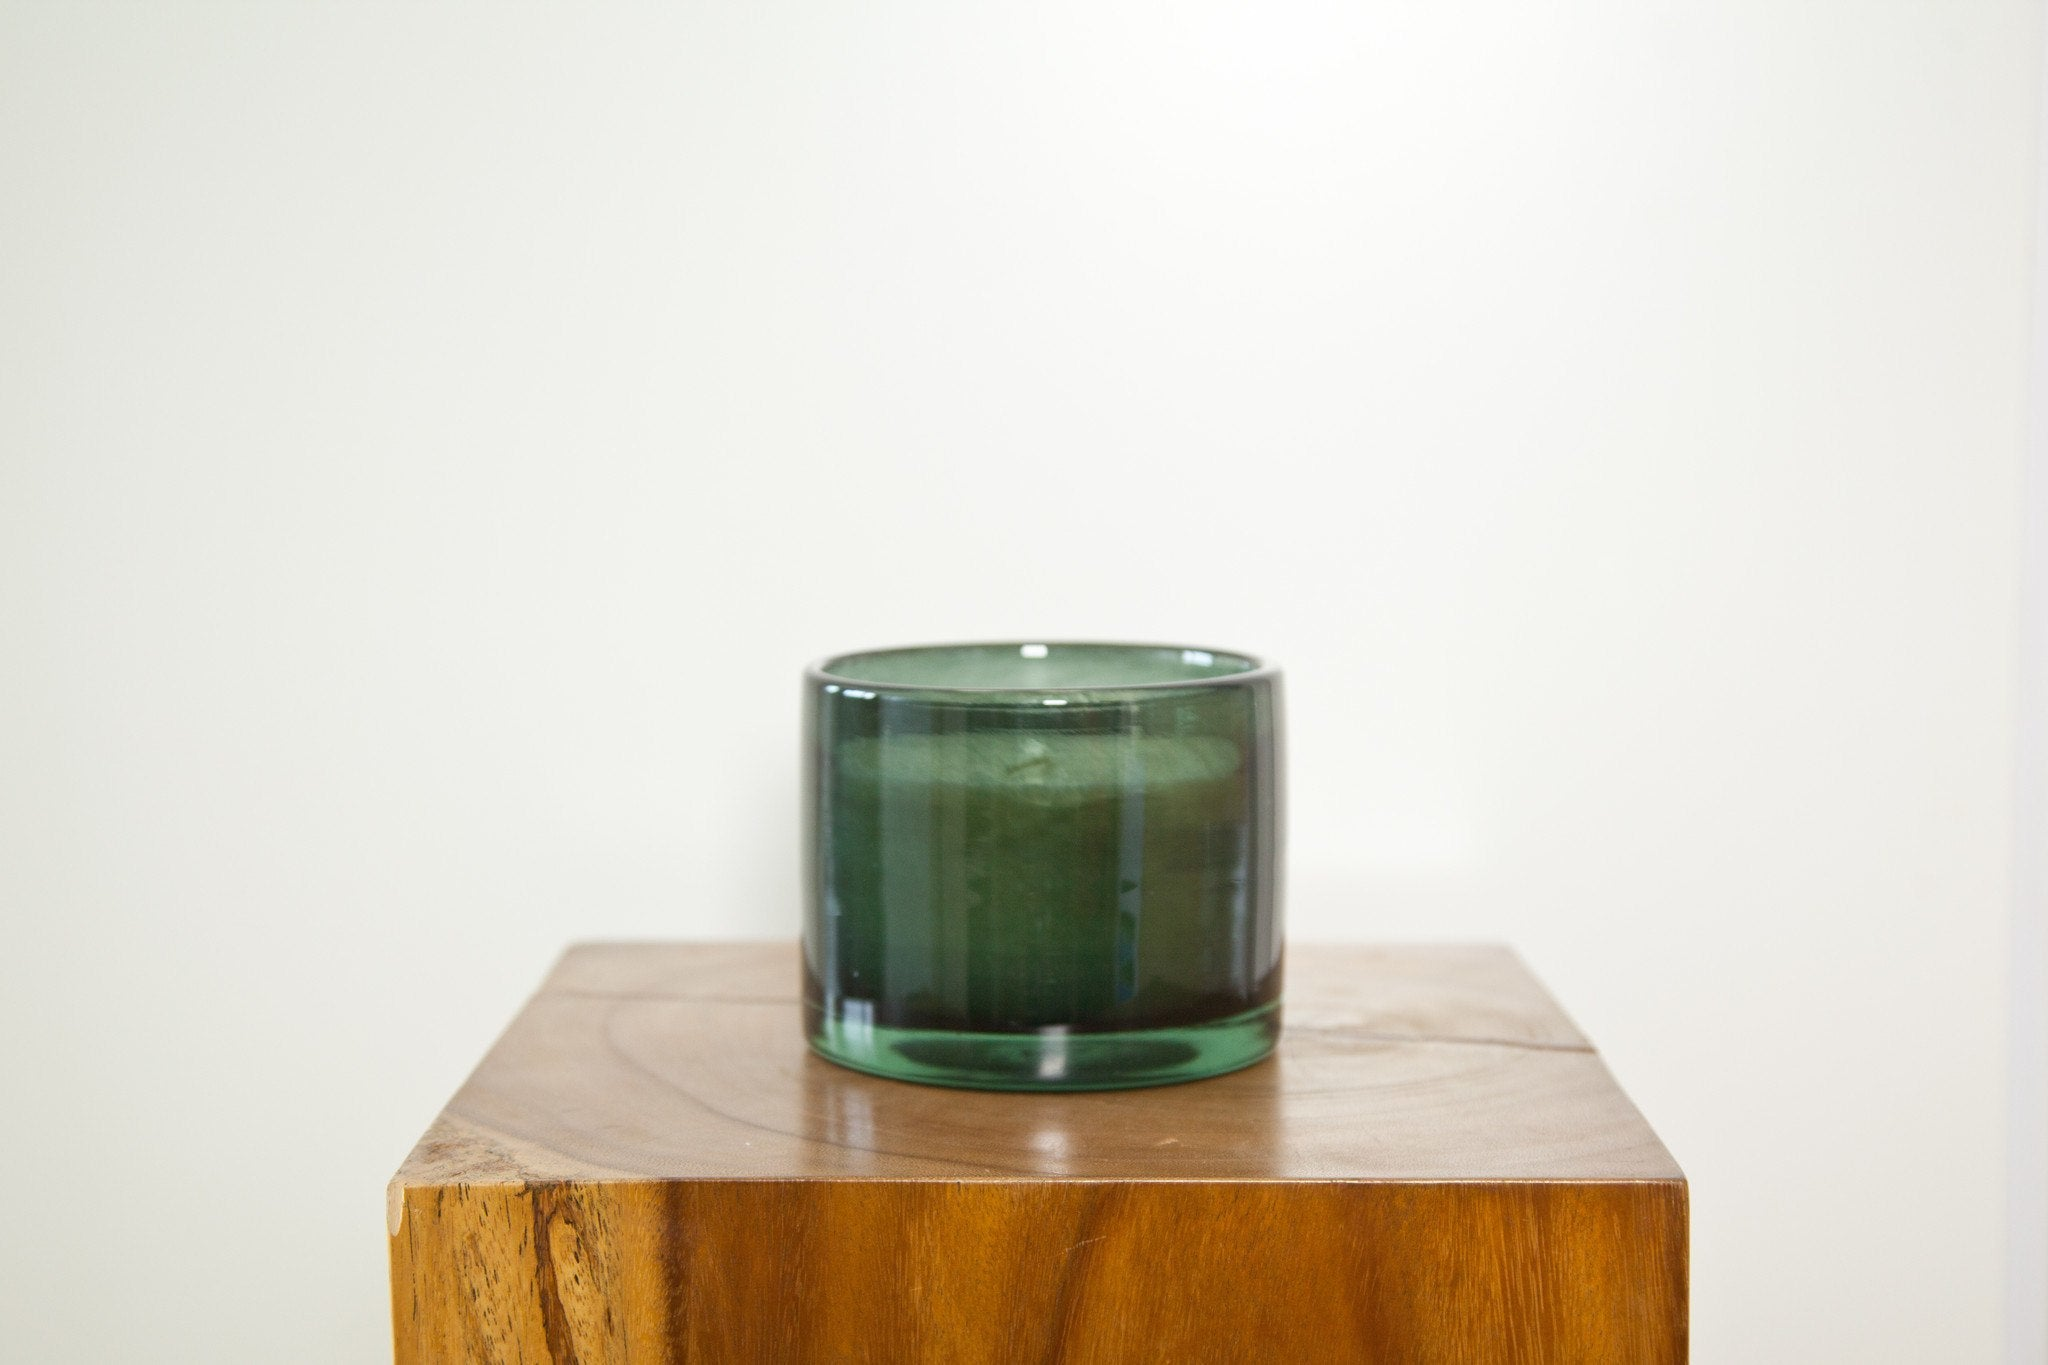 HENRY DEAN CYLINDER CANDLE VASE IN SMOKE - Eclectic Cool